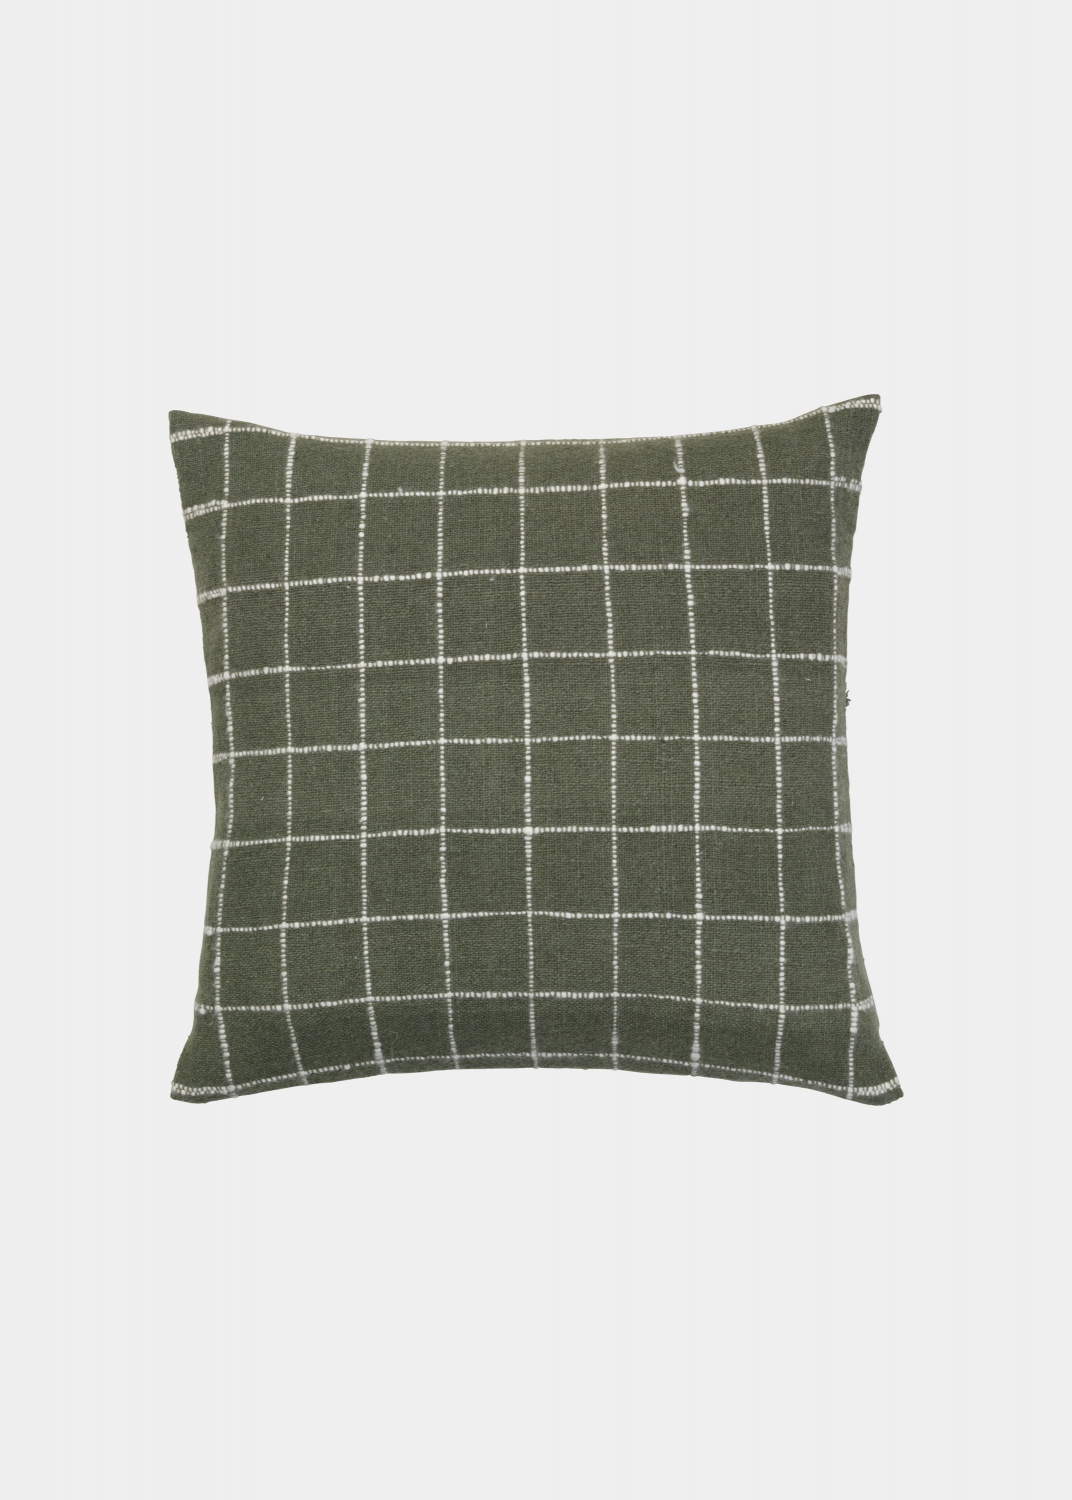 Cushions - Amrak Cushion